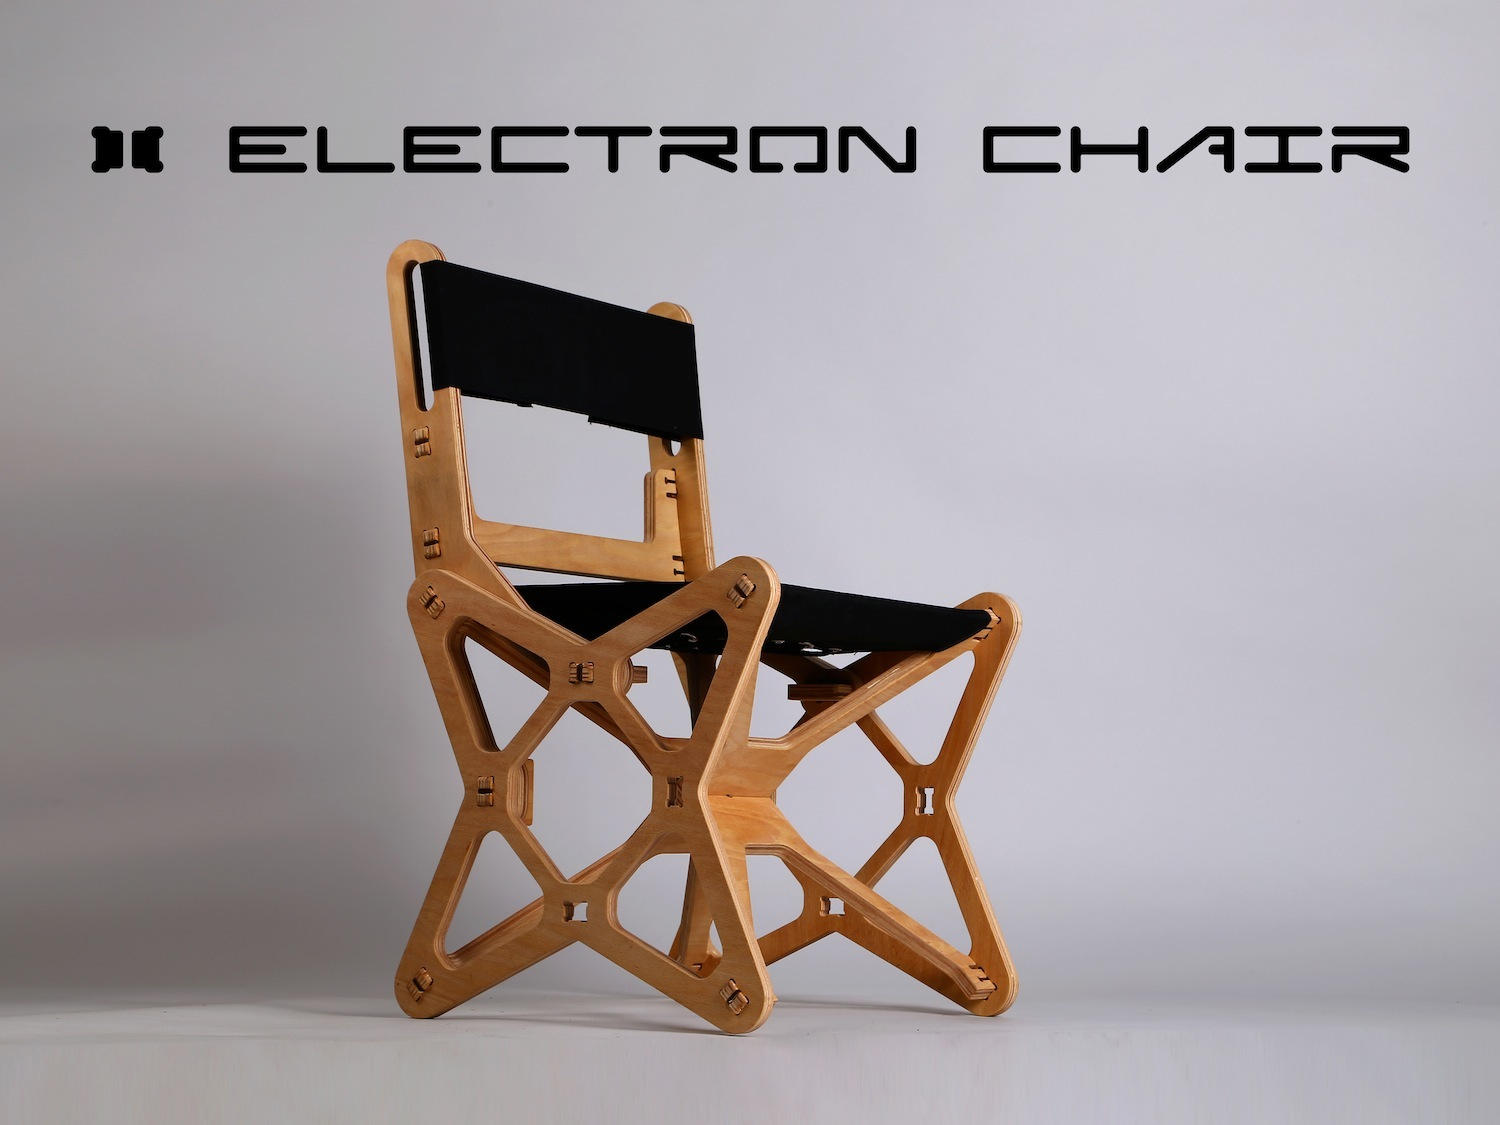 Flat Pack Electron Chair Is CNC Milled From Beech Plywood For Zero Waste